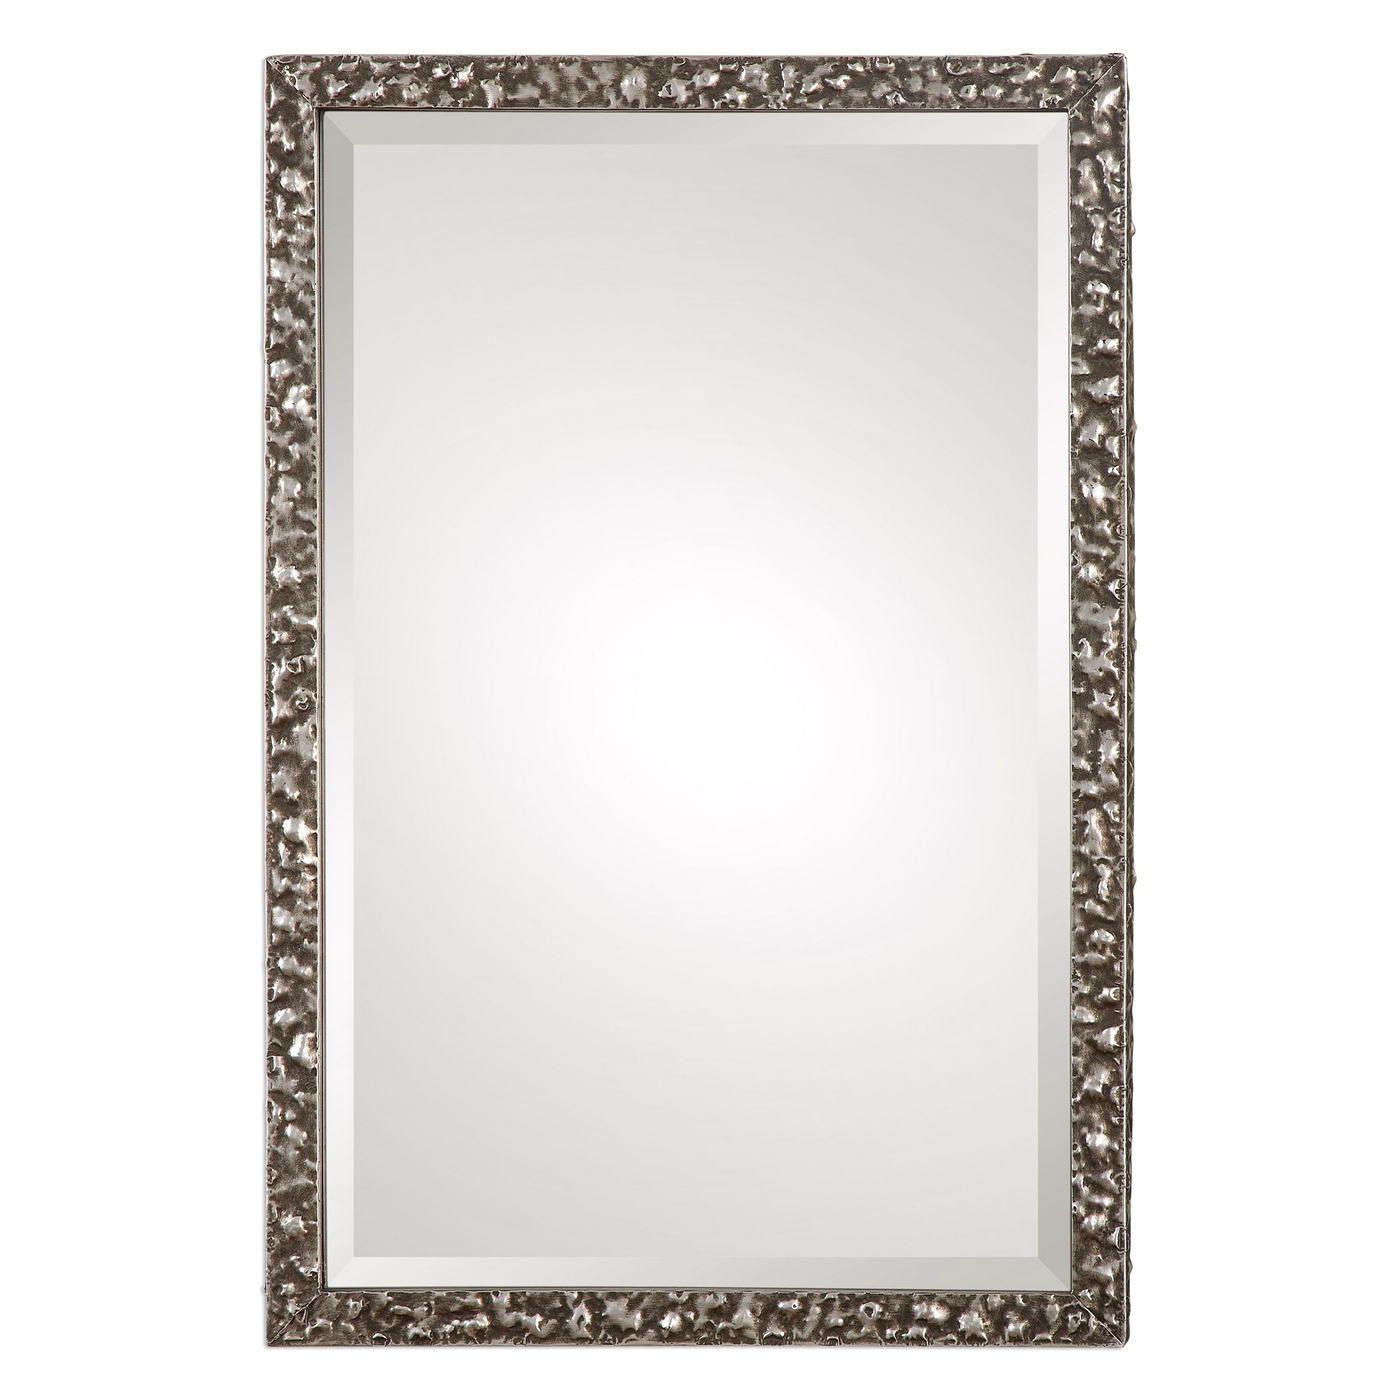 Alshon hand hammered hand forged iron framed mirror in for Silver framed mirror